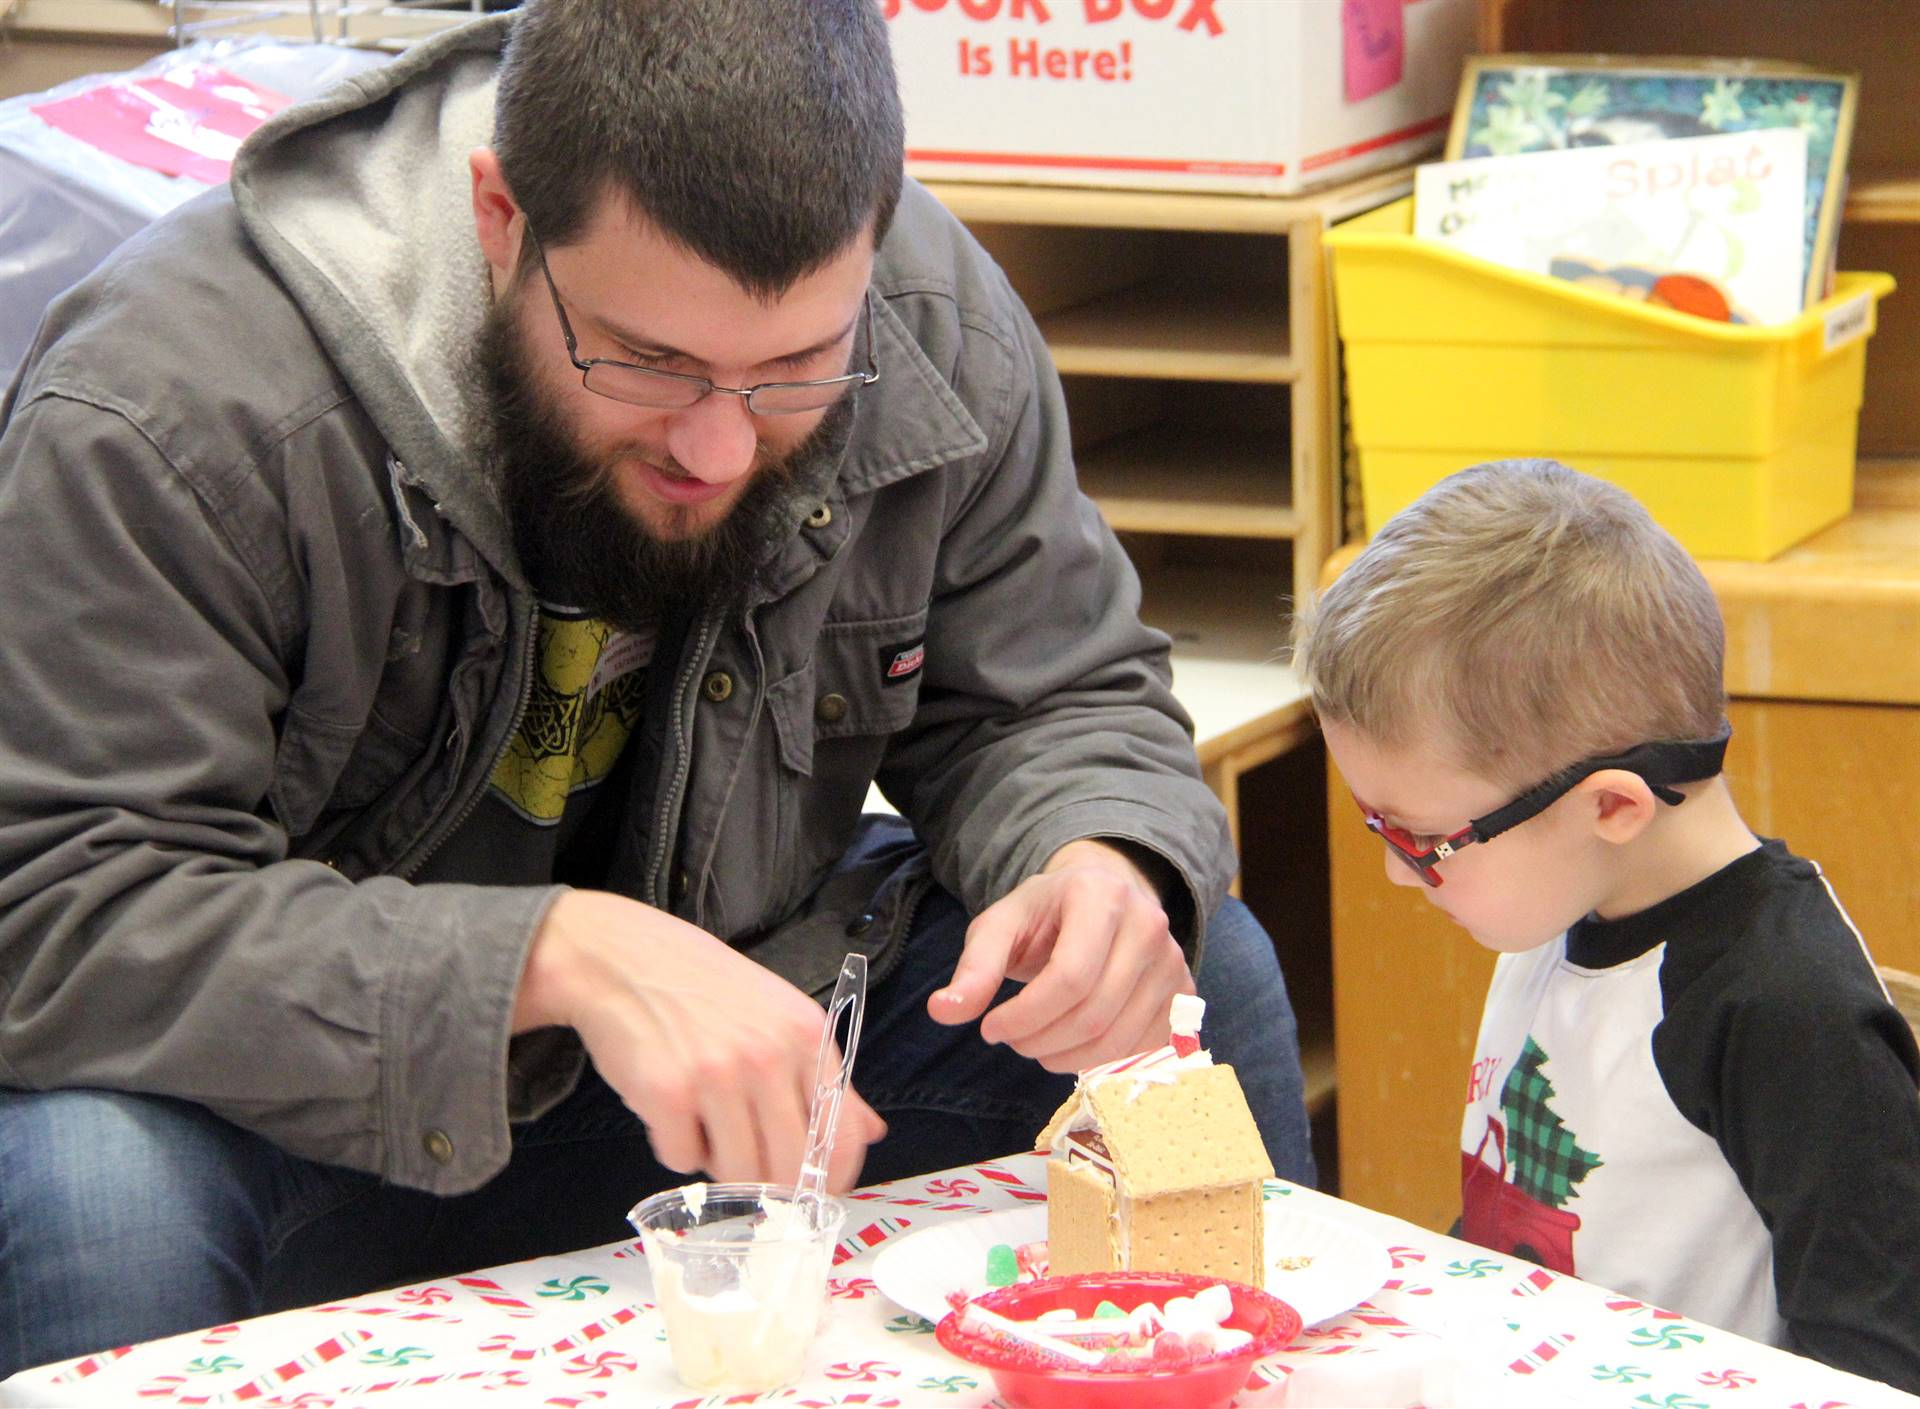 two people creating gingerbread house